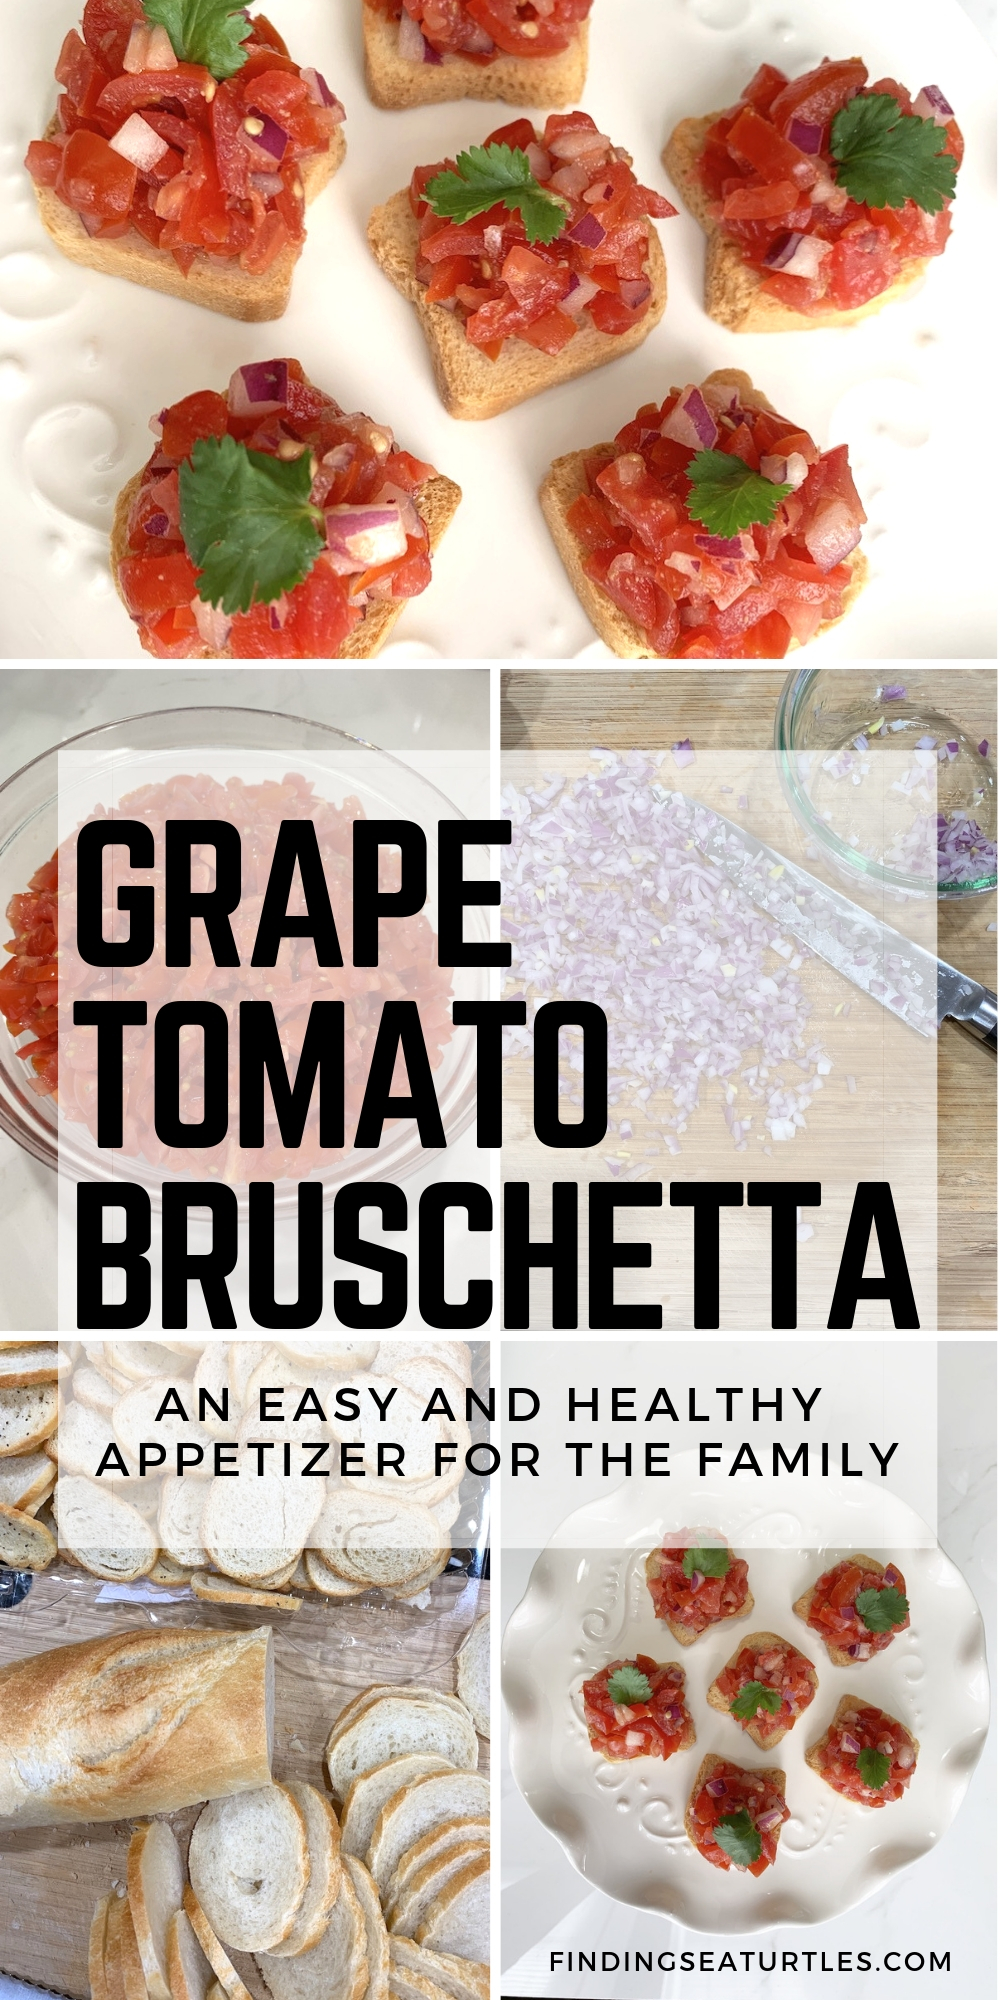 Grape Tomato Bruschetta An Easy And Healthy Appetizer For Family #Bruschetta #GrapeTomatoes #TomatoBruschetta #QuickandEasy #BudgetFriendly #Affordable #Healthy #Appetizer #AffordableFood #SaveTime #SaveMoney